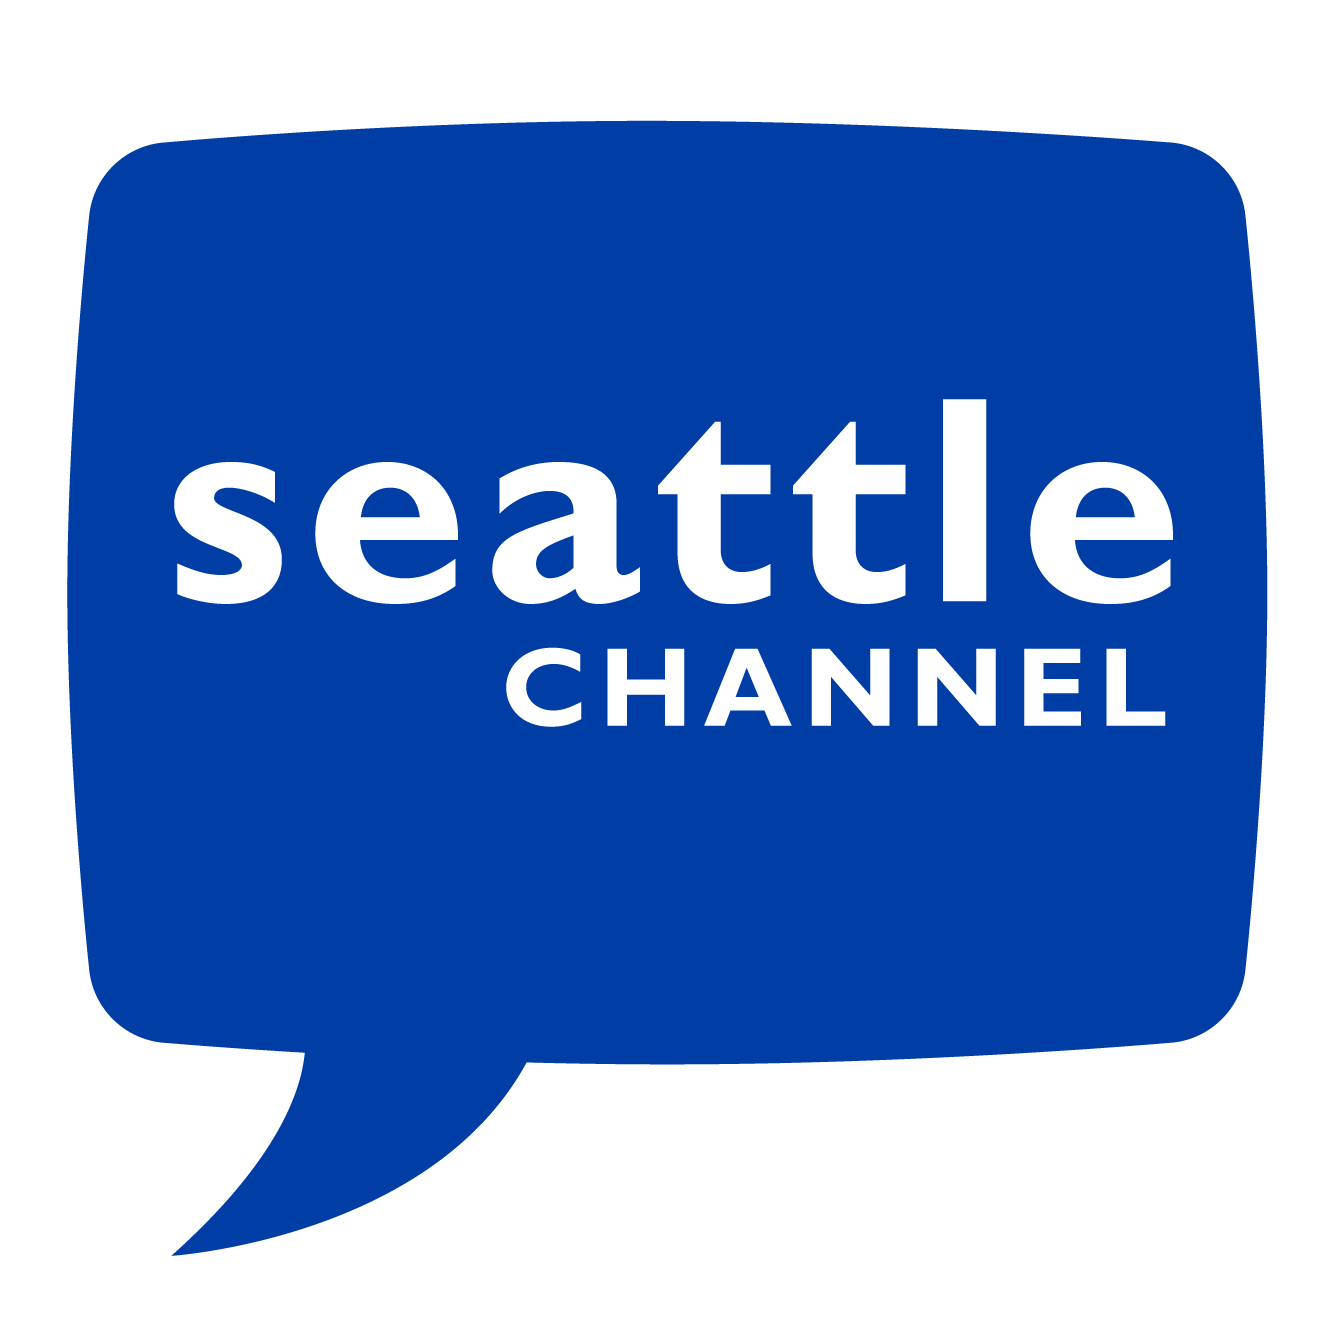 Seattle Channel blue logo